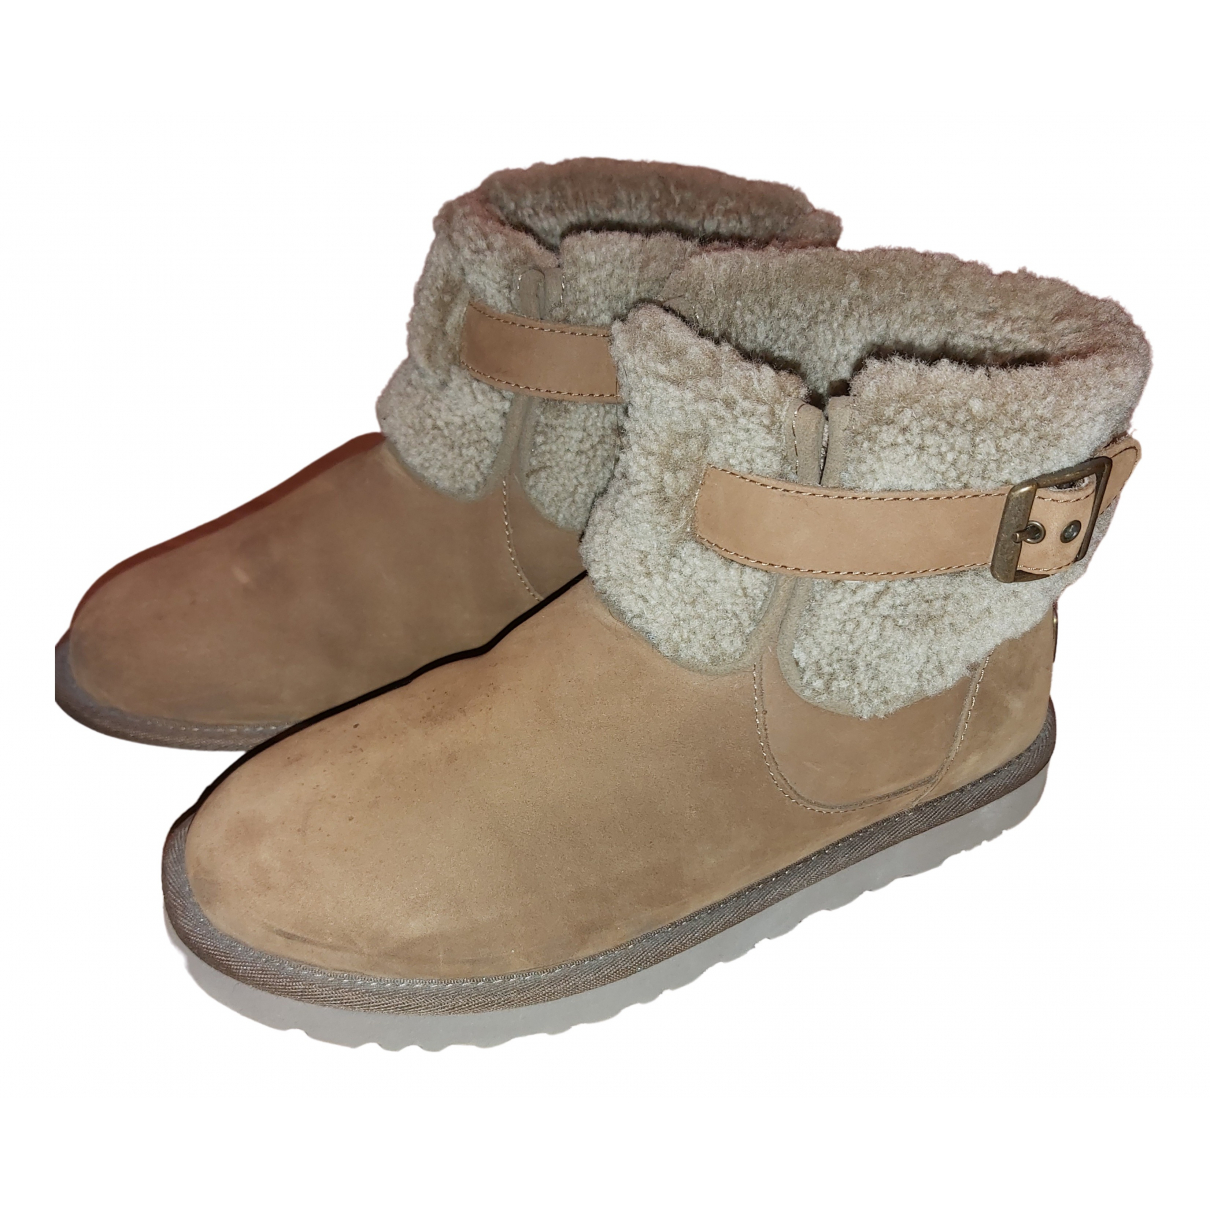 Ugg N Brown Suede Ankle boots for Women 39 EU